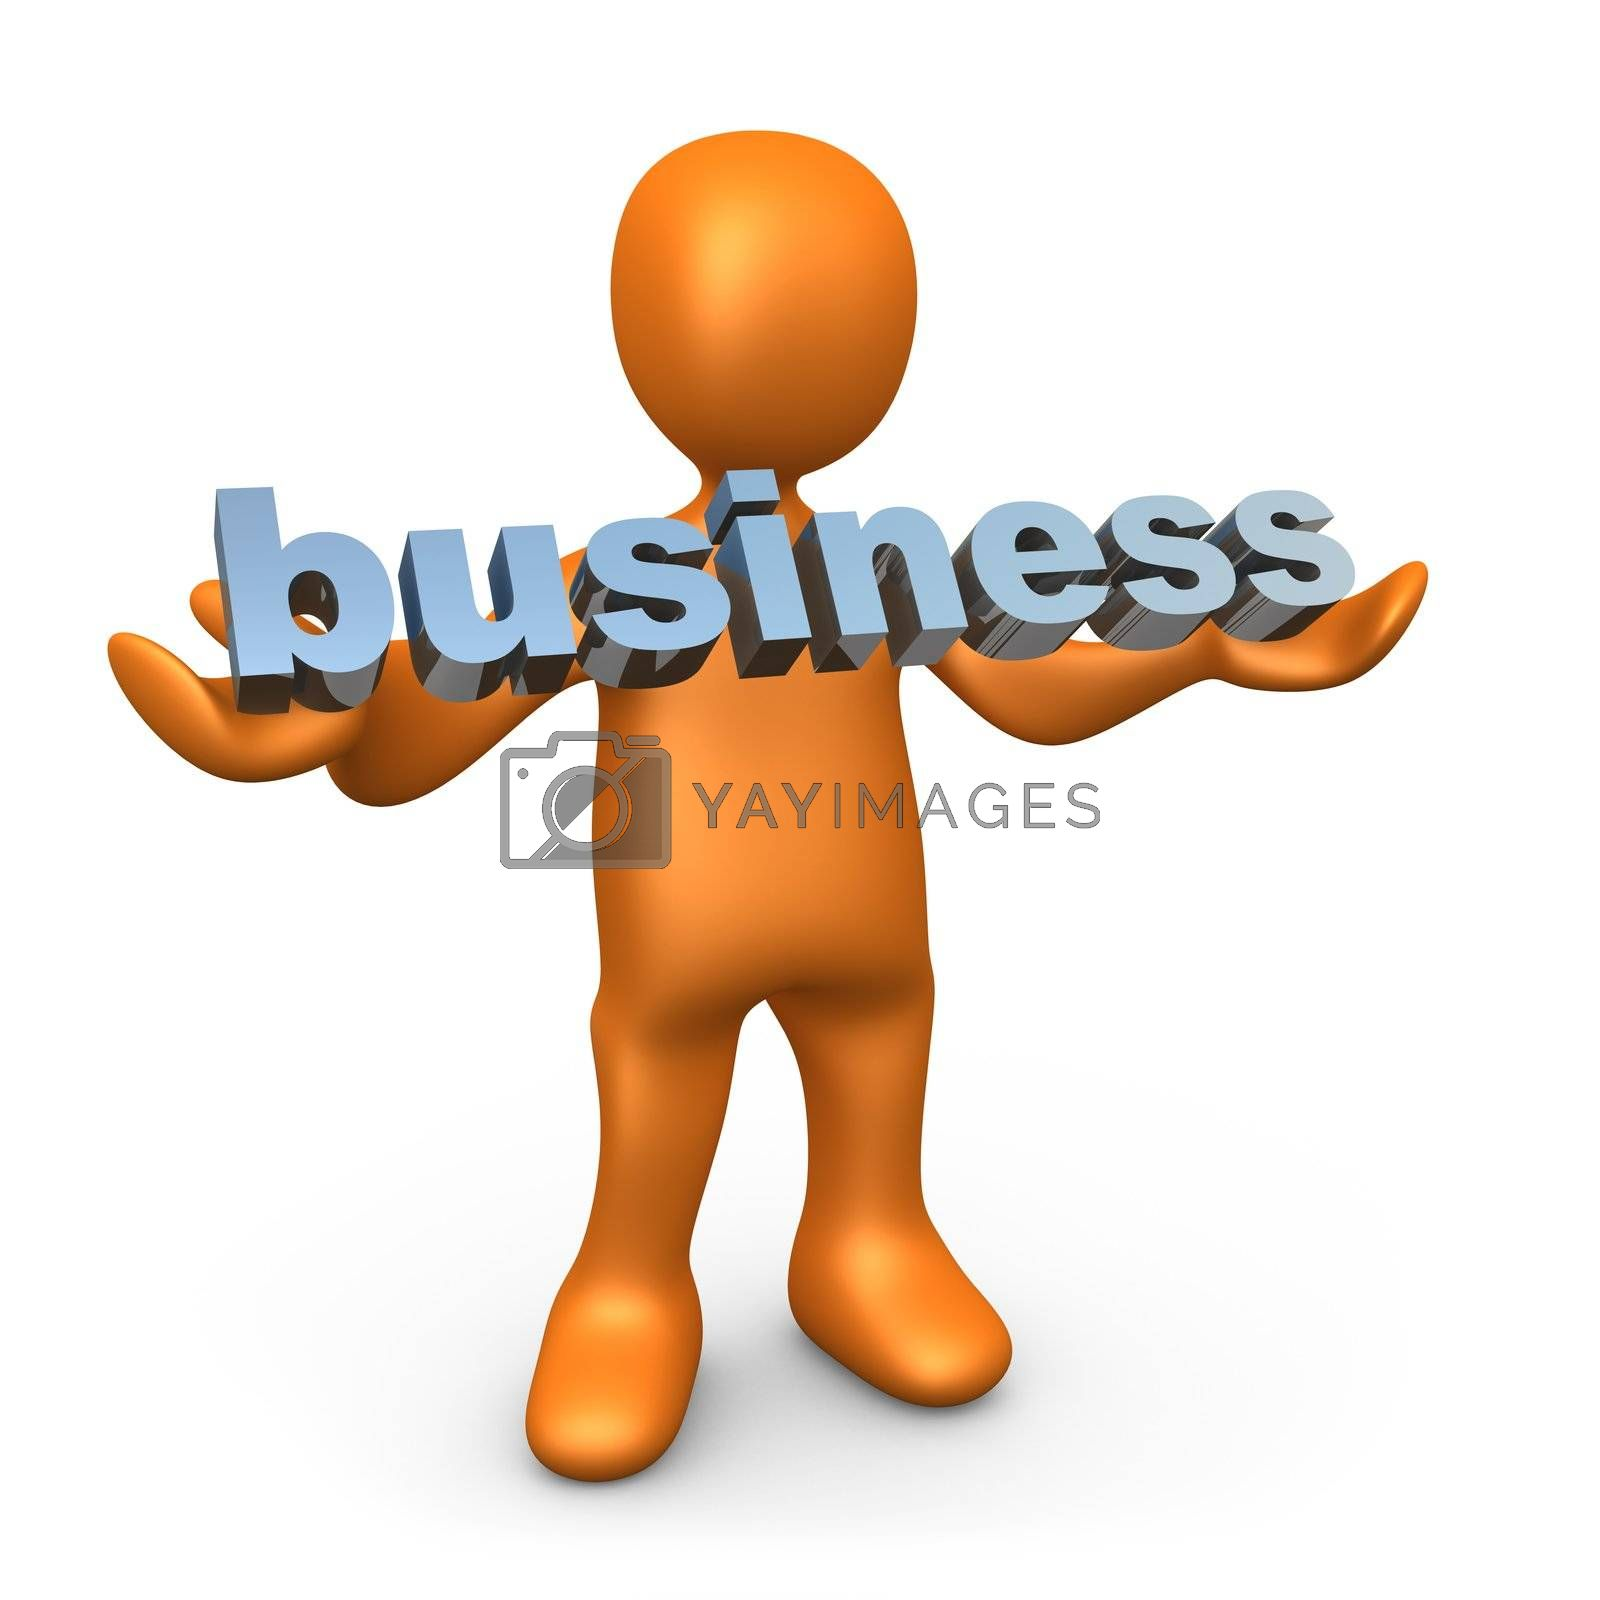 Business by 3pod